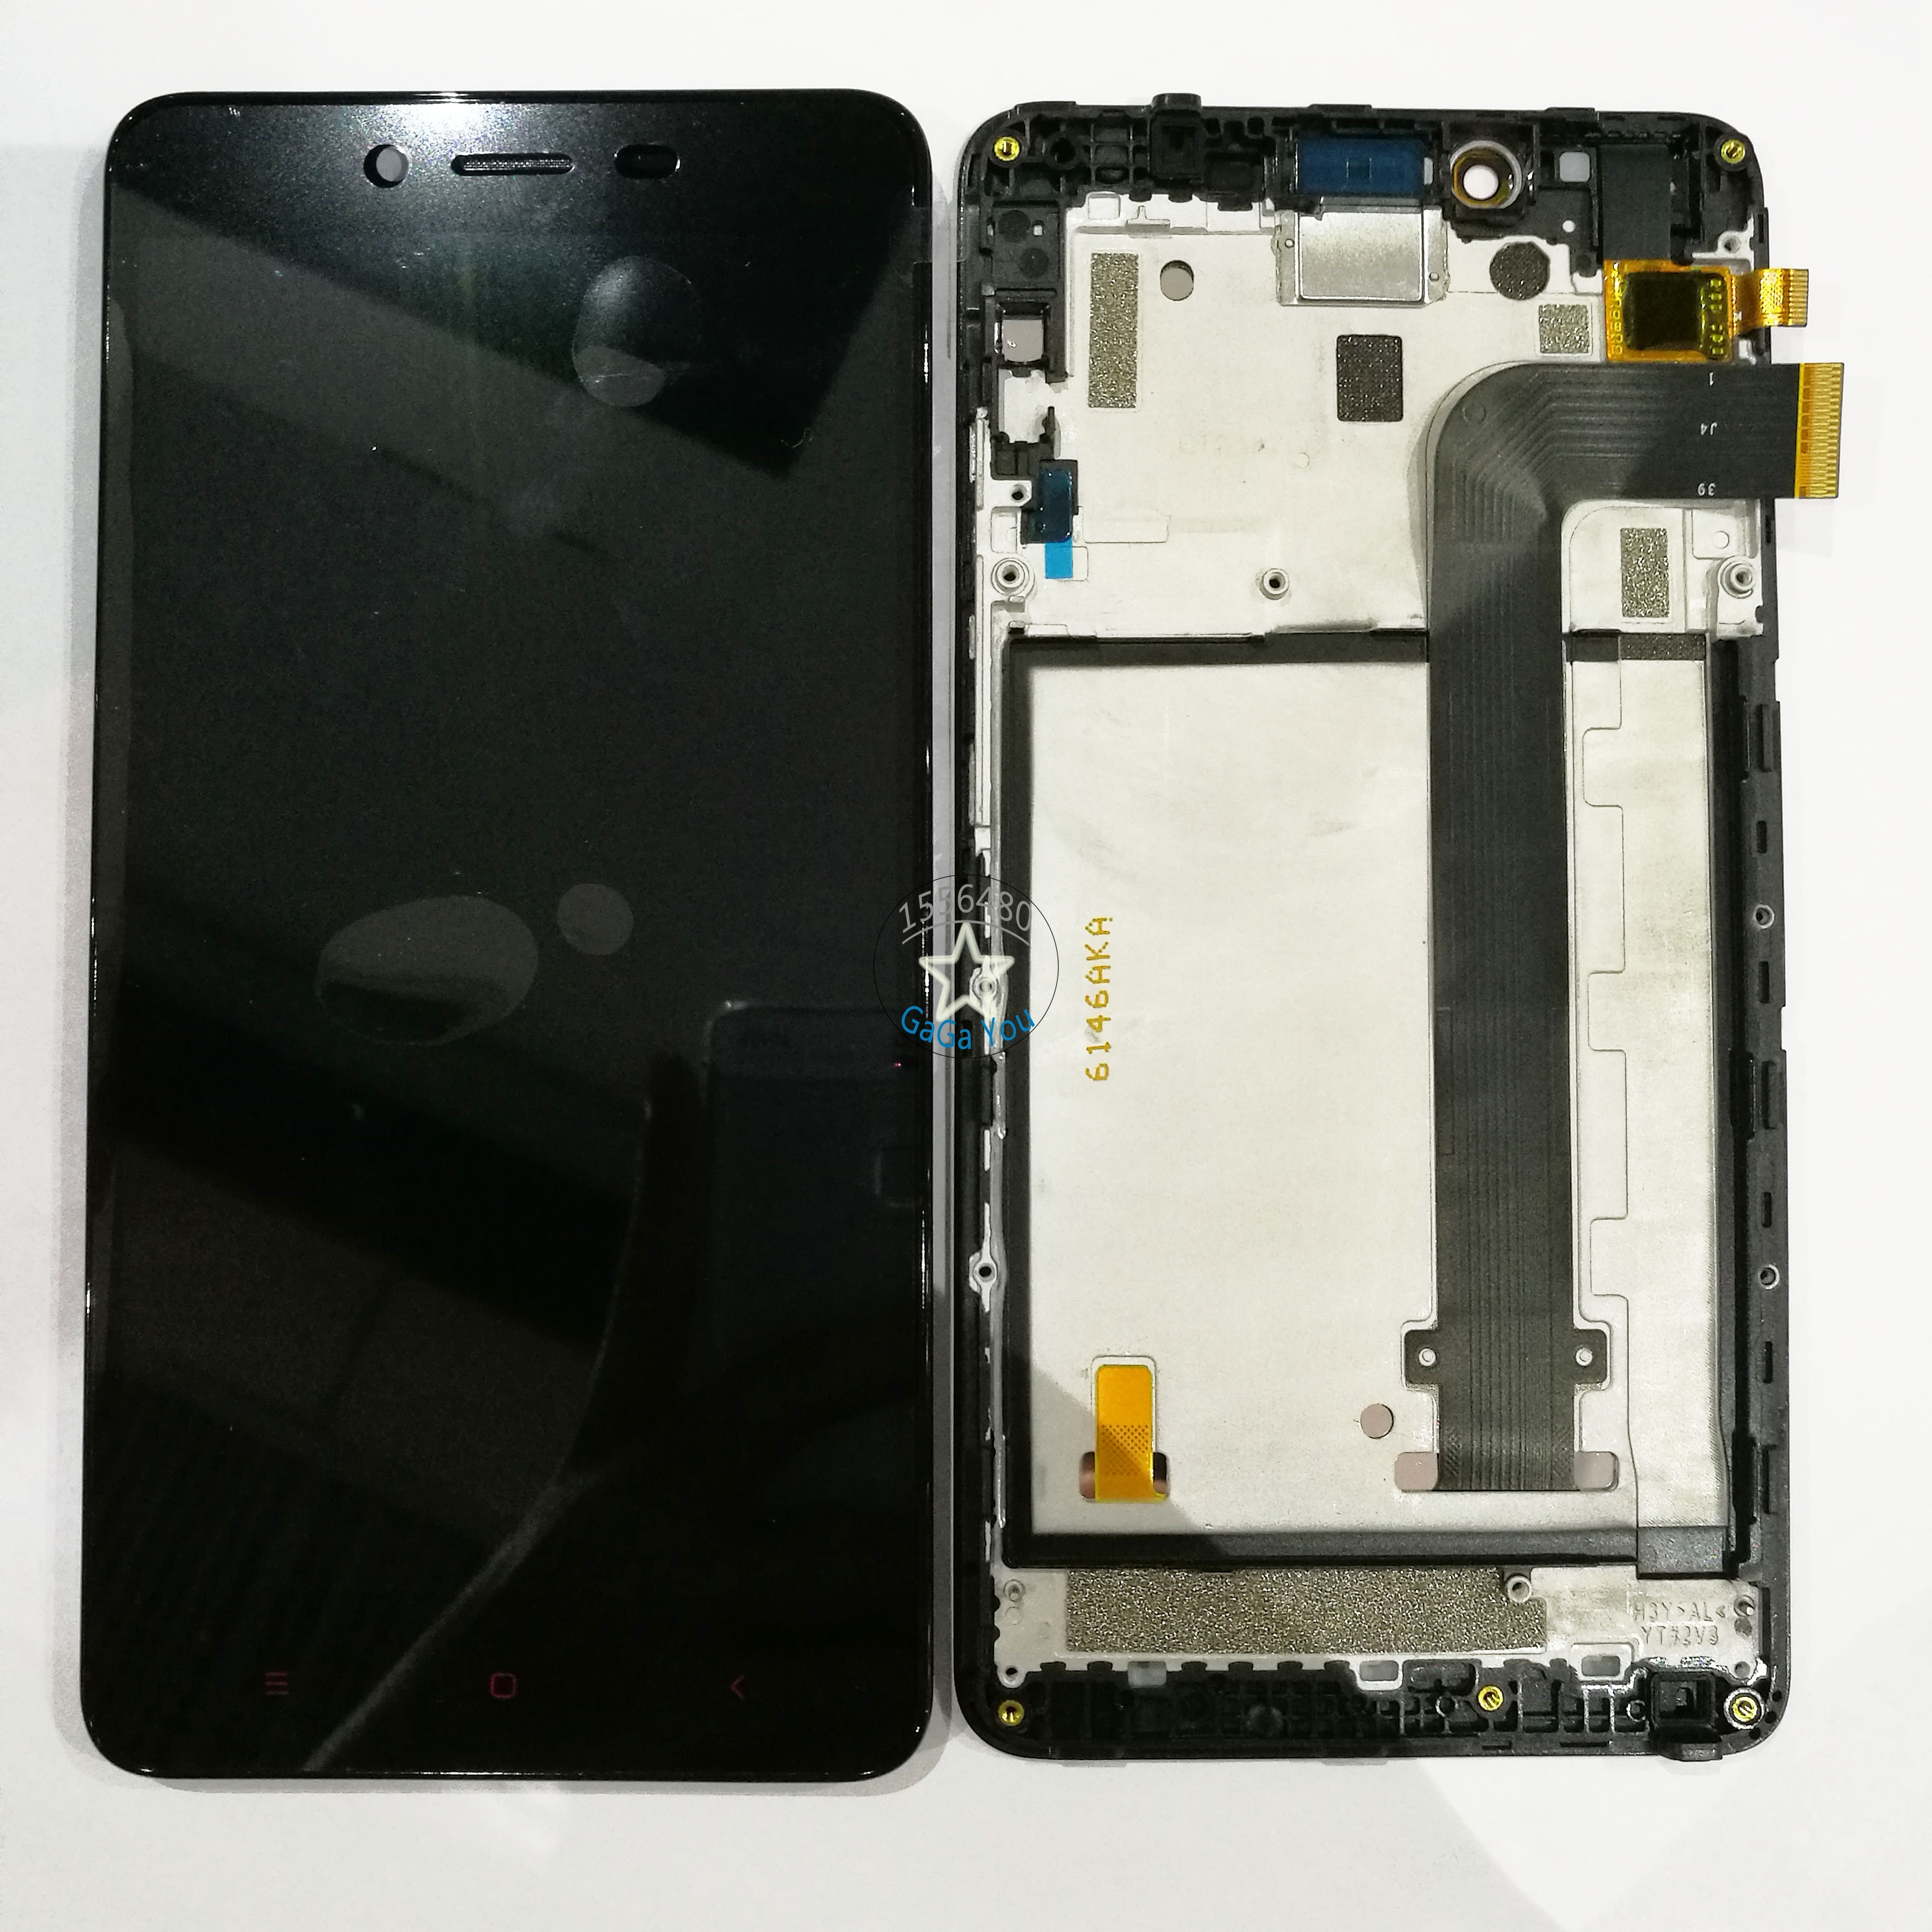 Original New LCD Display +Touch Screen Panel Digitizer +Bezel Frame Assembly For Xiaomi Redmi Note 2 Replacement Parts